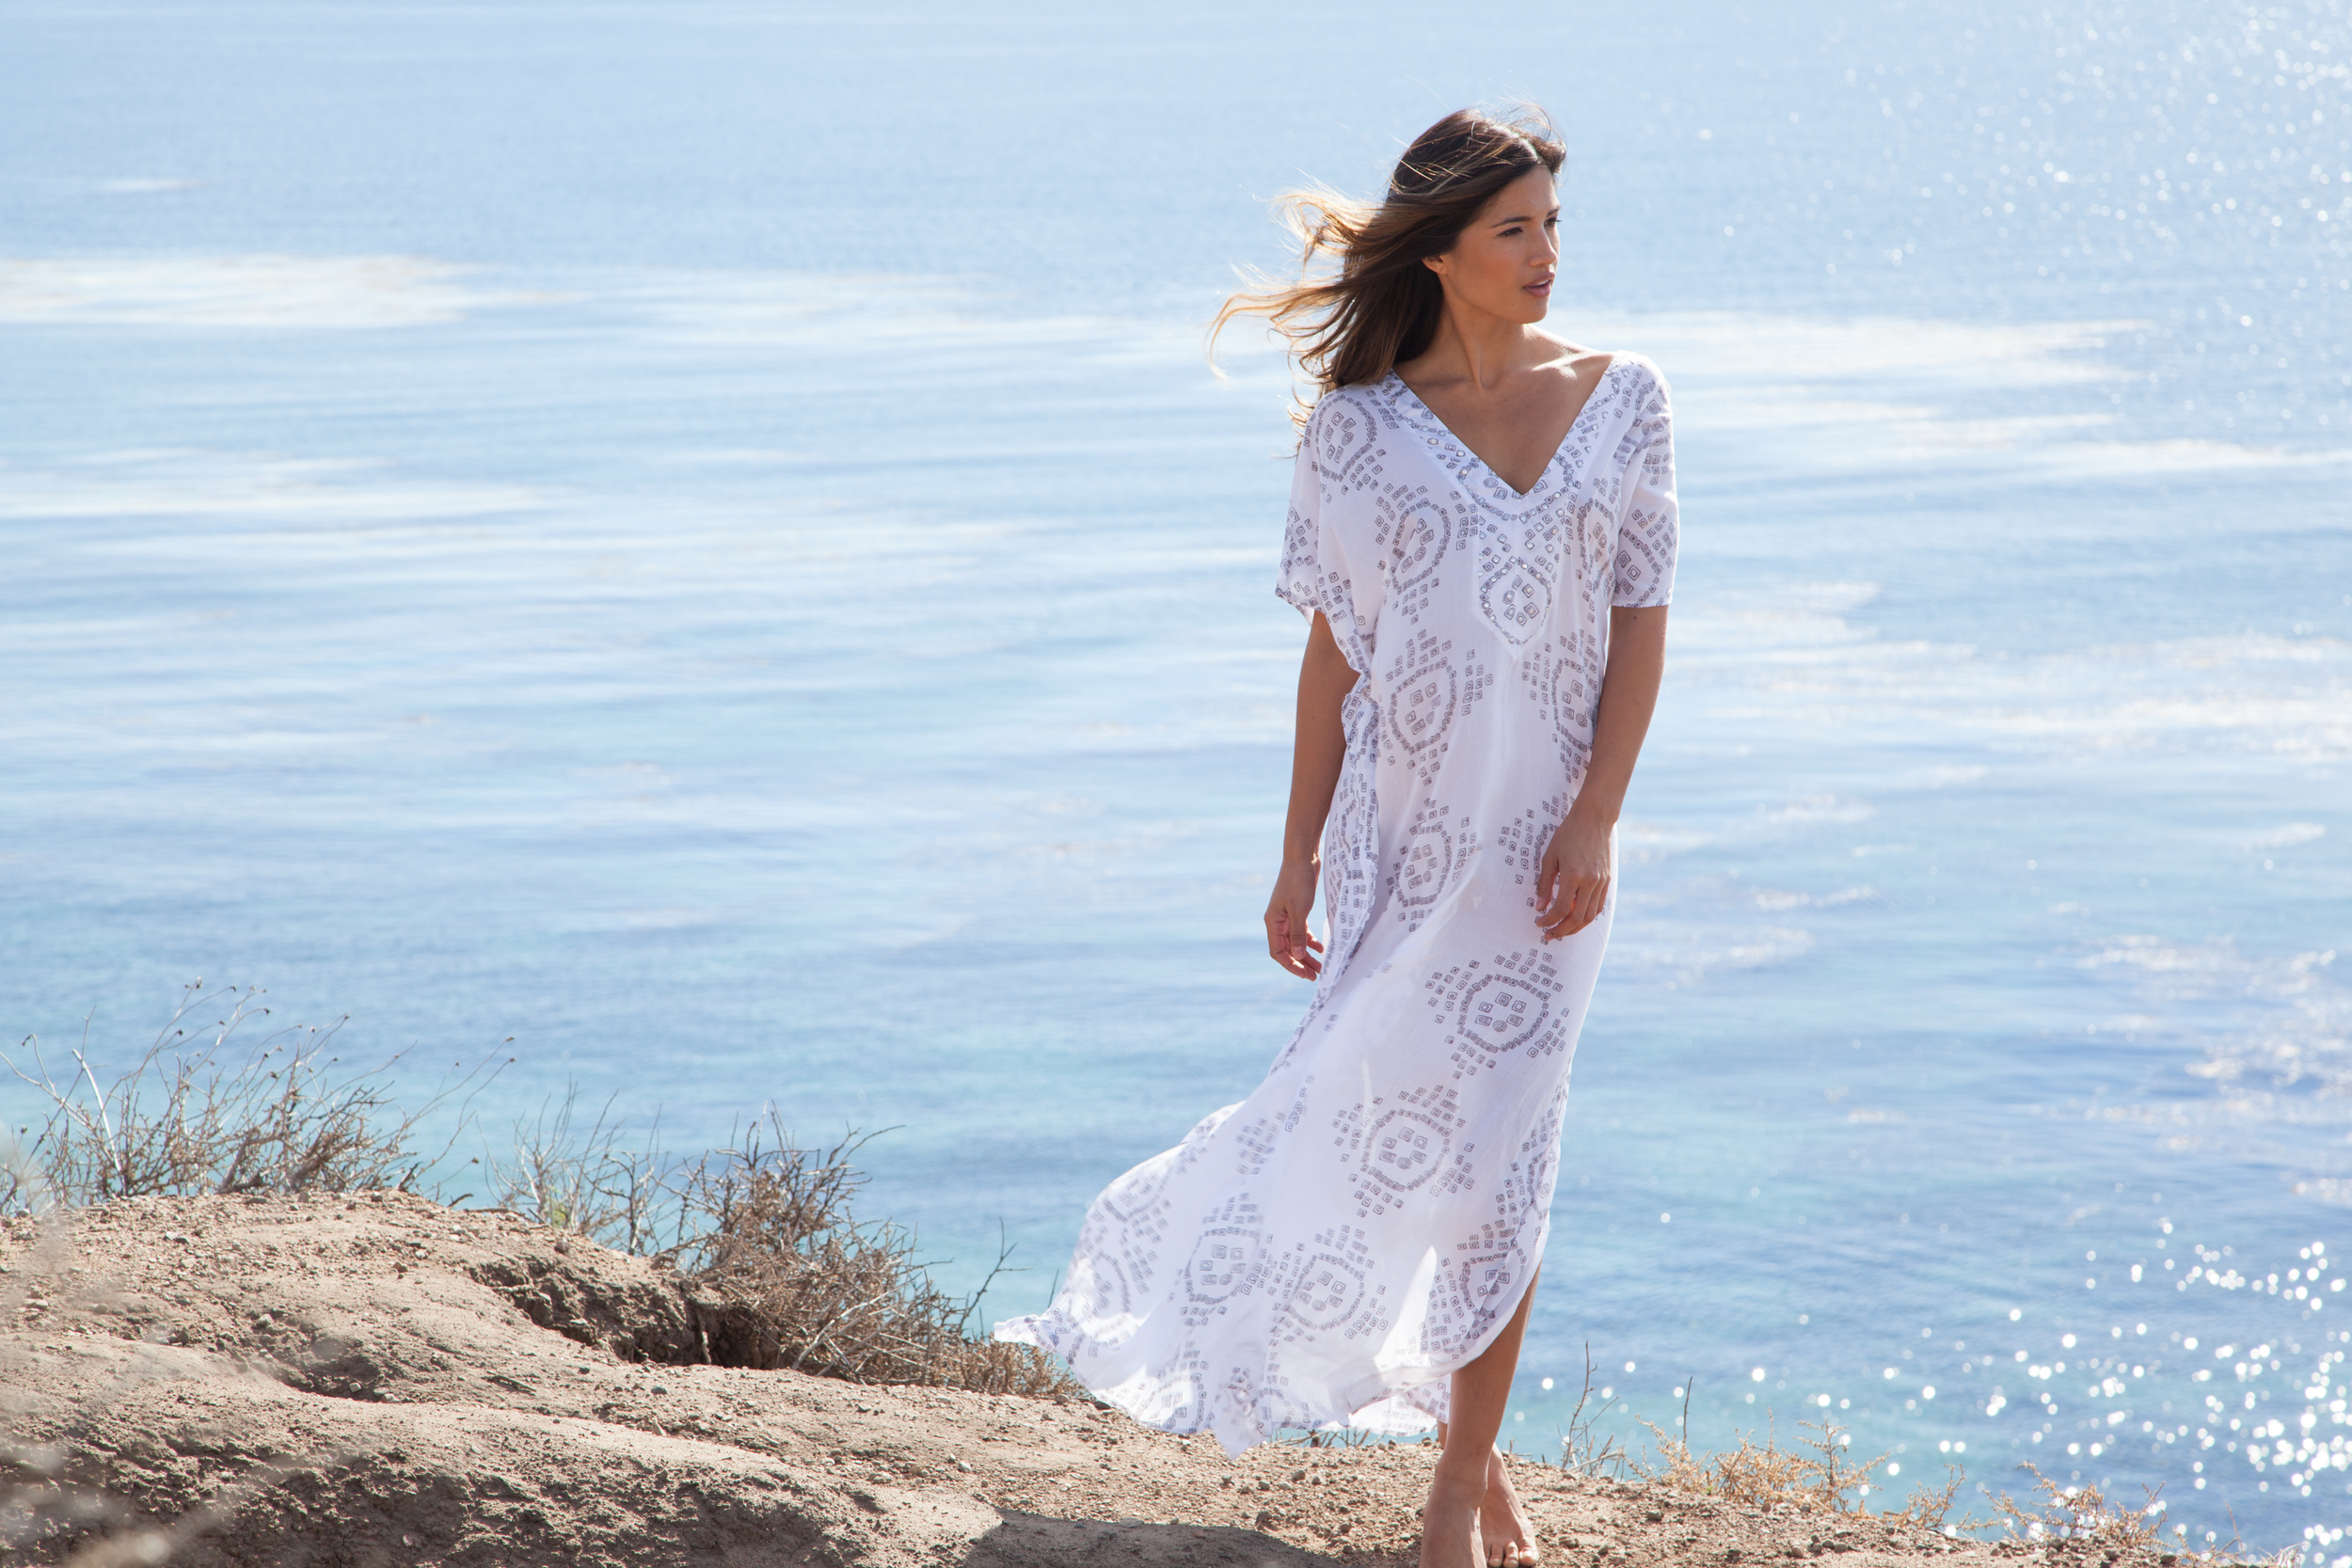 VSP Studios Lookbook E-Commerce Fashion Photography. Bohemian beach look Resort wear